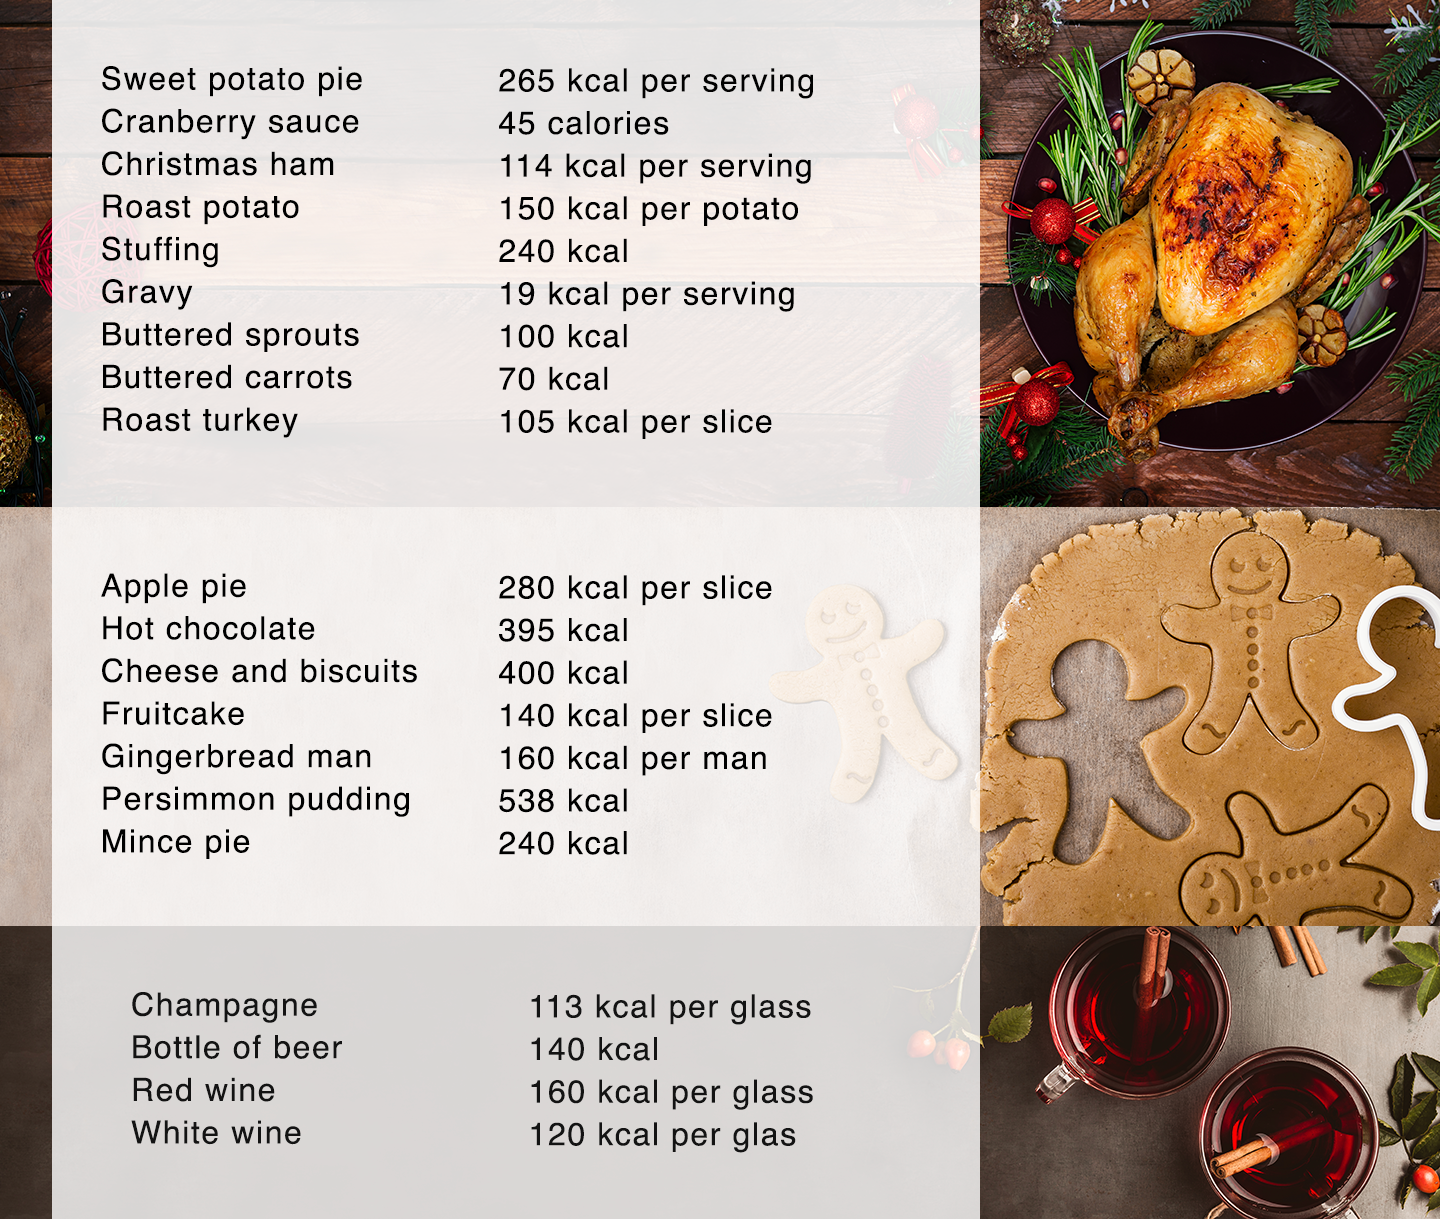 Christmastime calorie count